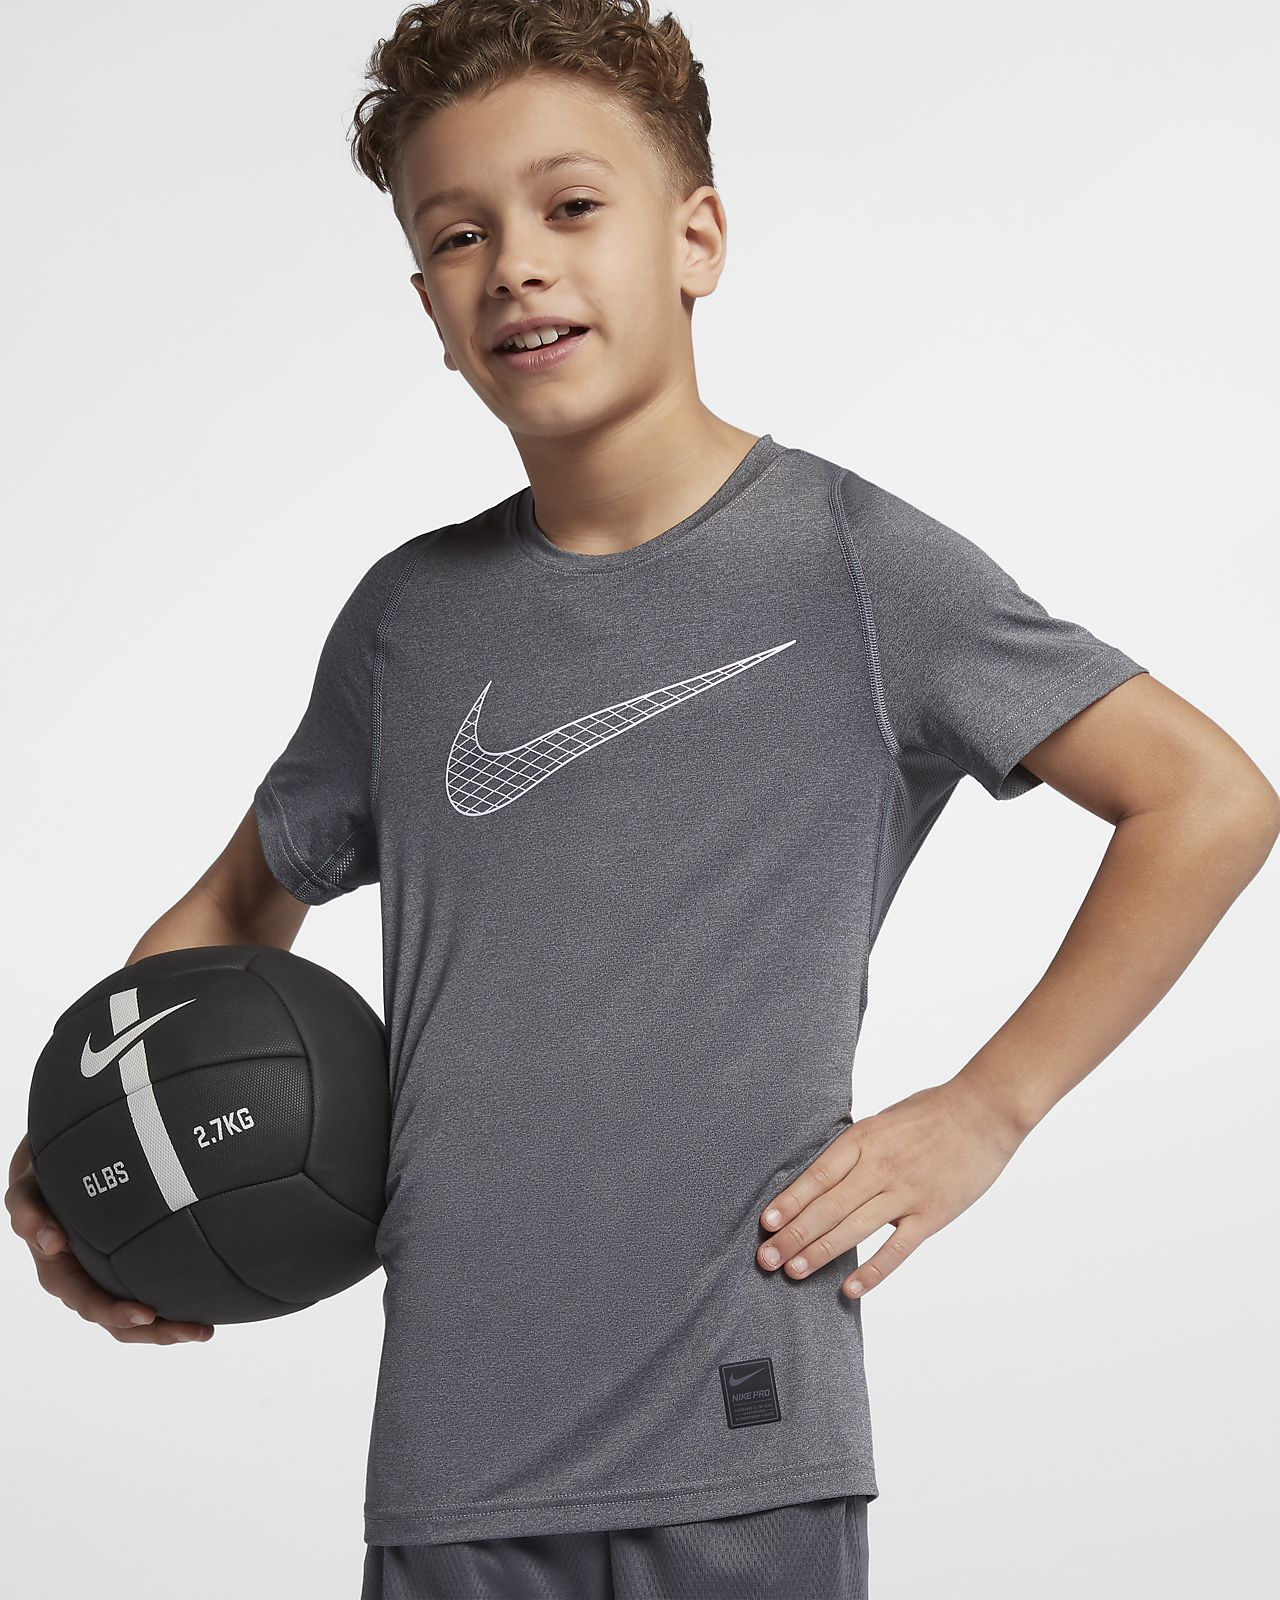 91dadcac Nike Pro Big Kids' (Boys') Short Sleeve Training Top. Nike.com